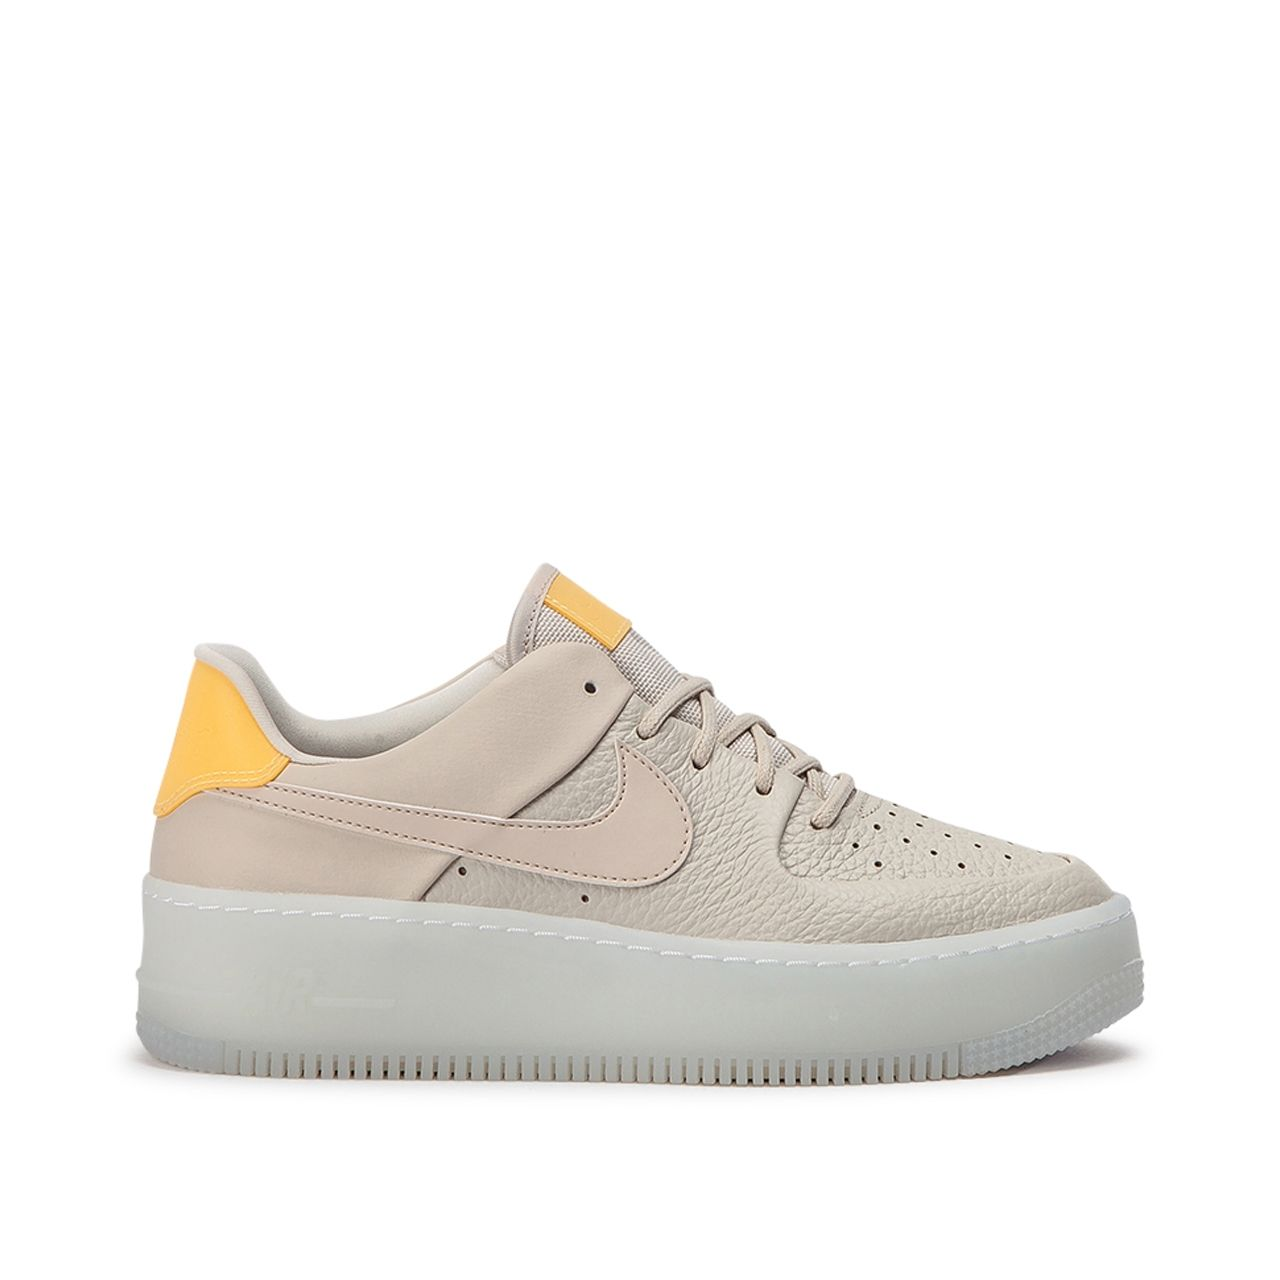 Nike WMNS Air Force 1 Sage Low LX (Beige Gelb) #sneaker